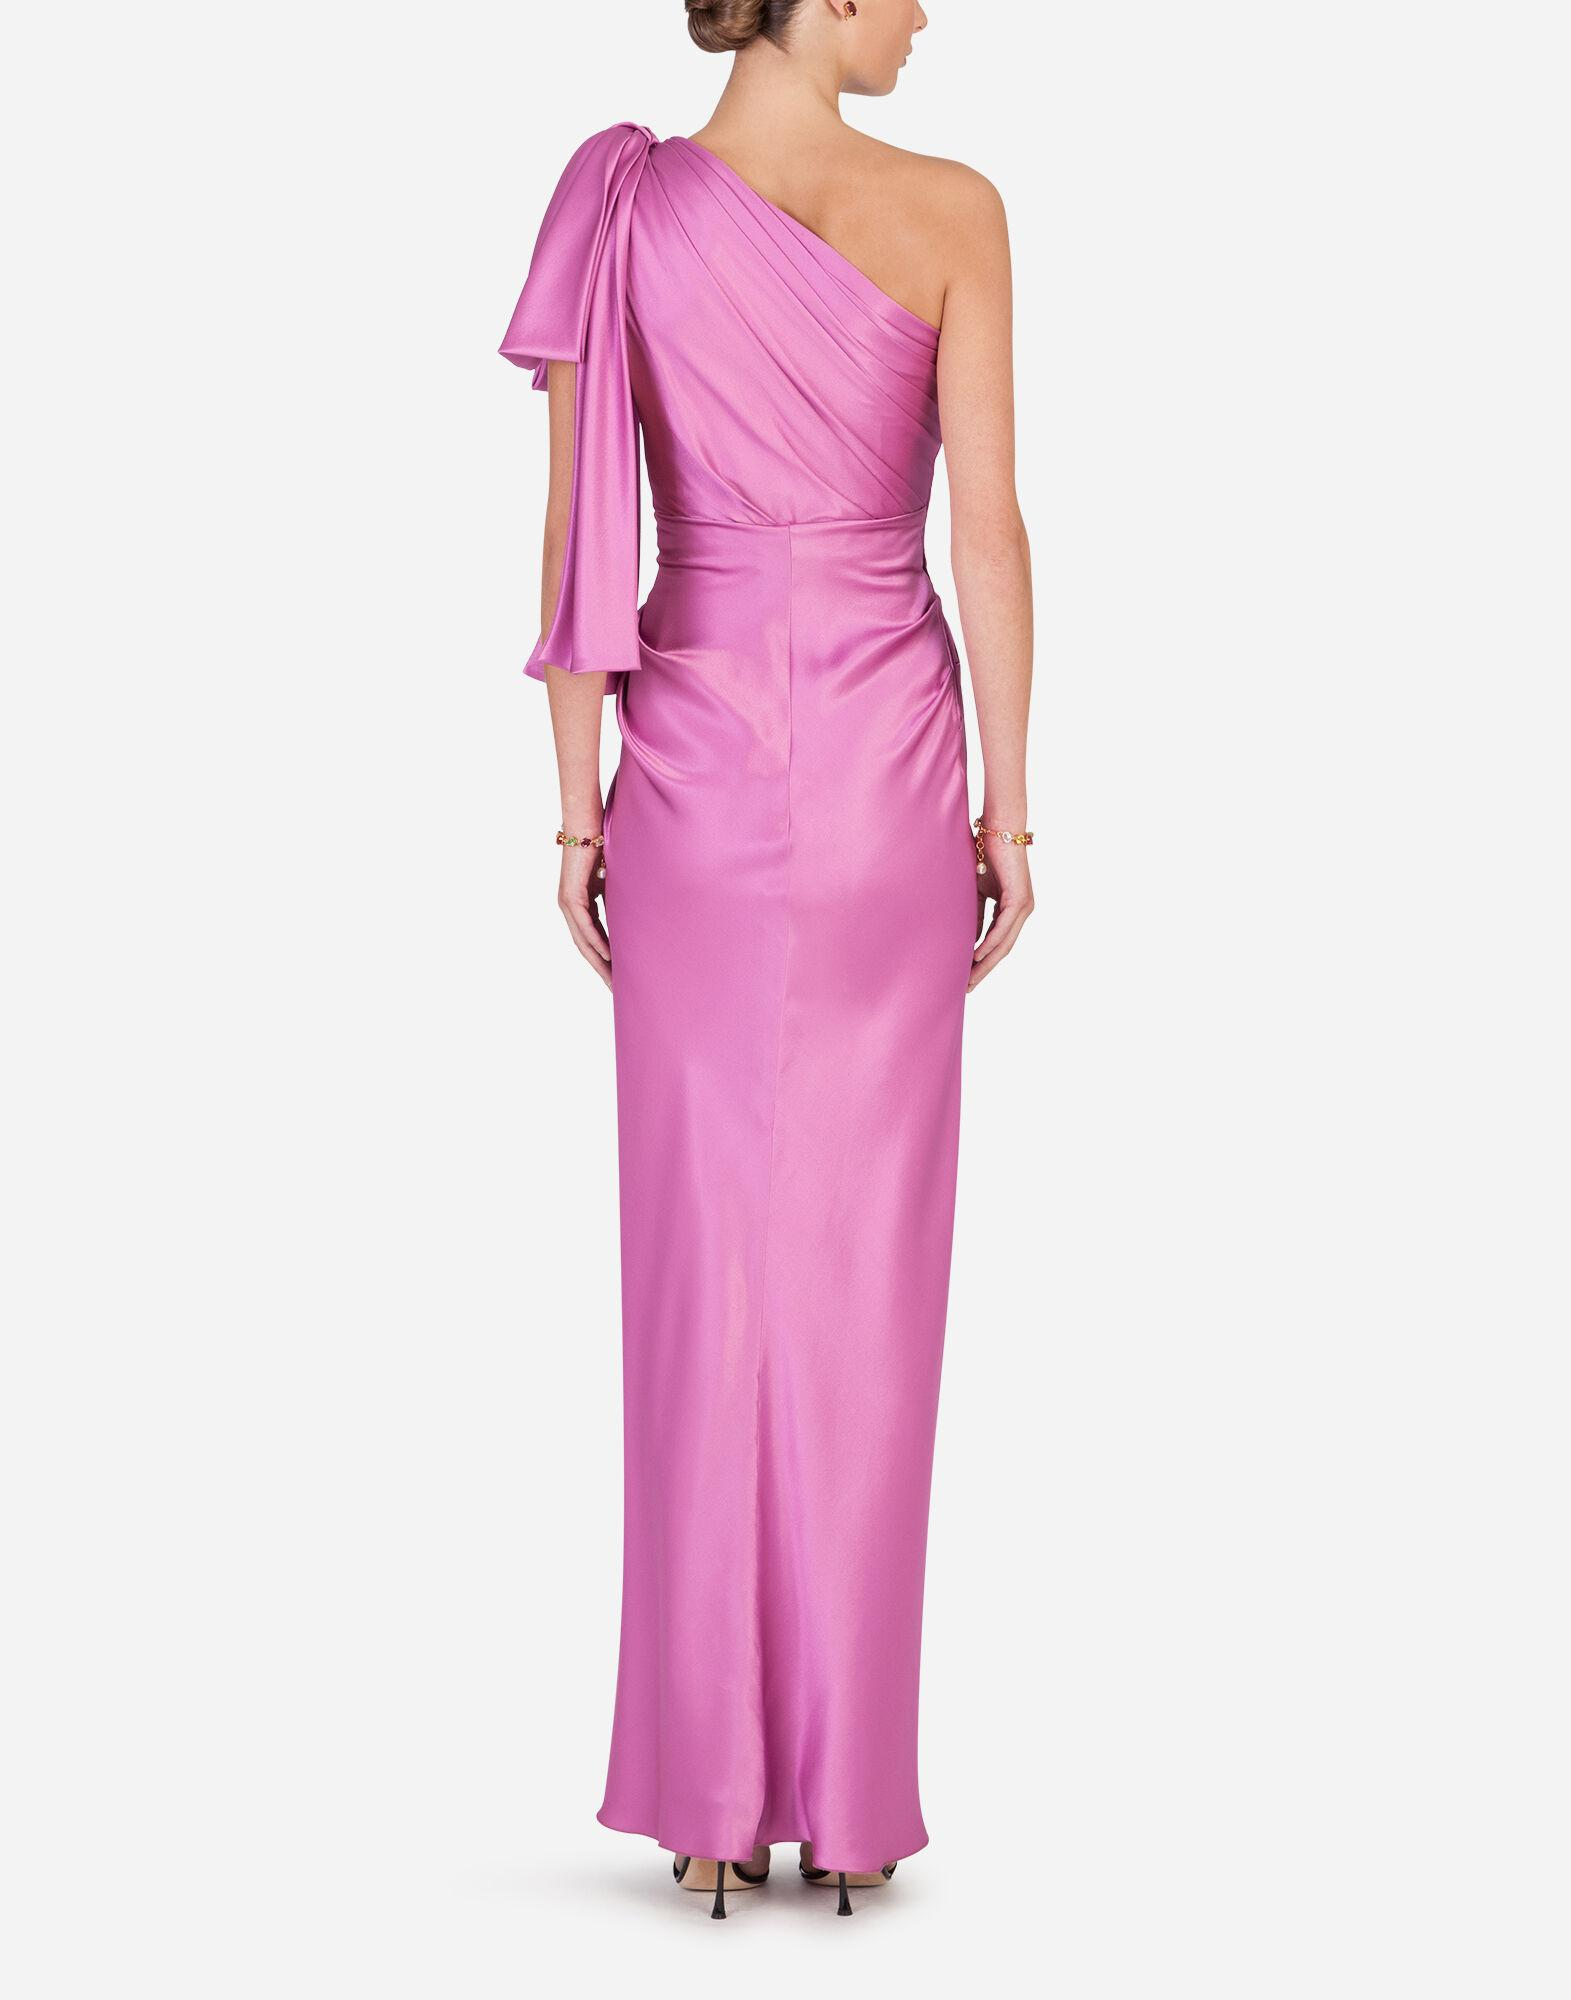 Long one-shoulder silk dress with bow detail 1